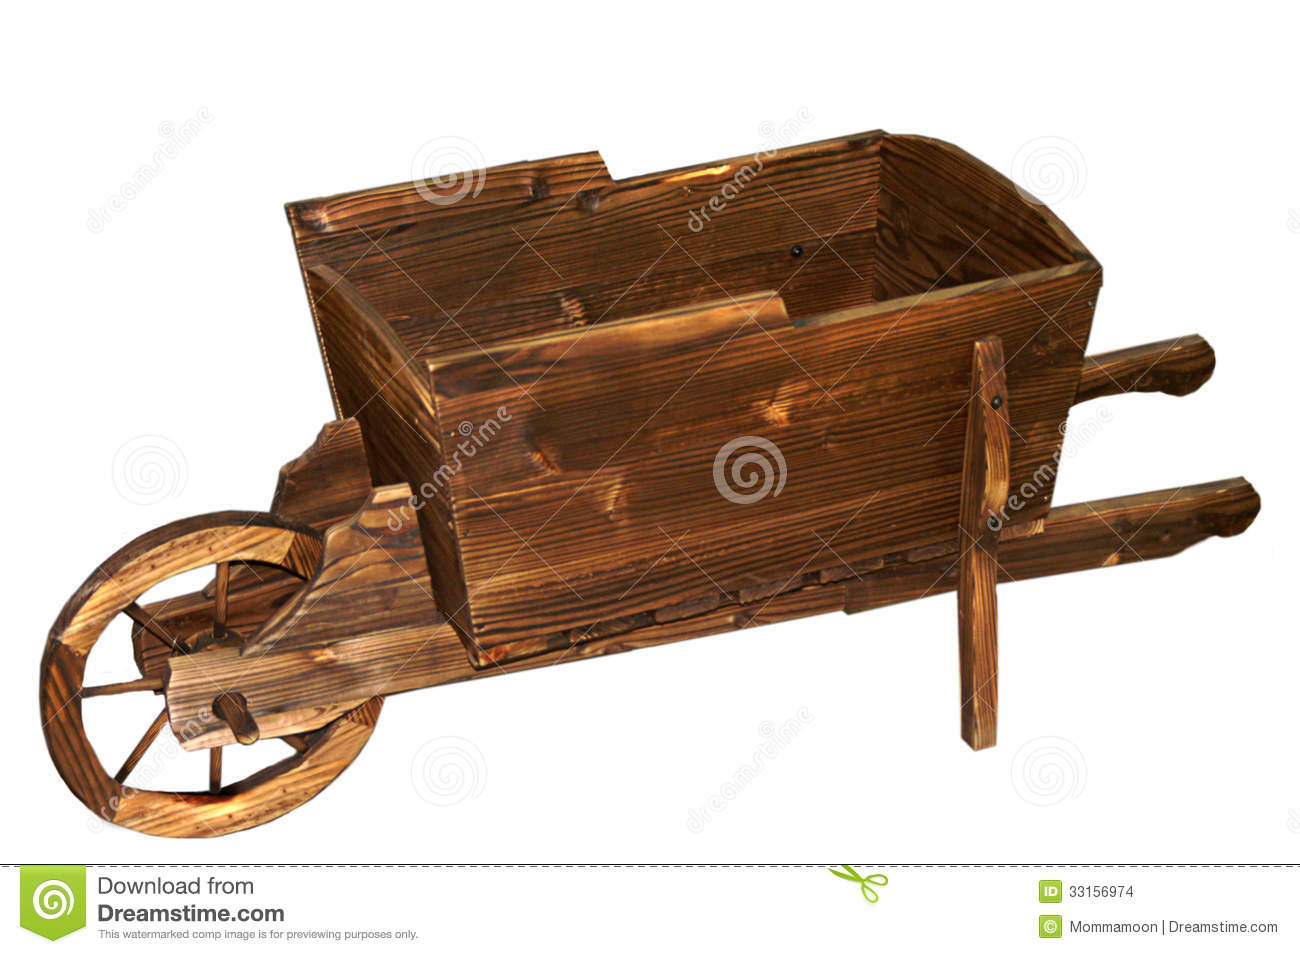 Wooden Wheelbarrow Stock Images - Image: 33156974